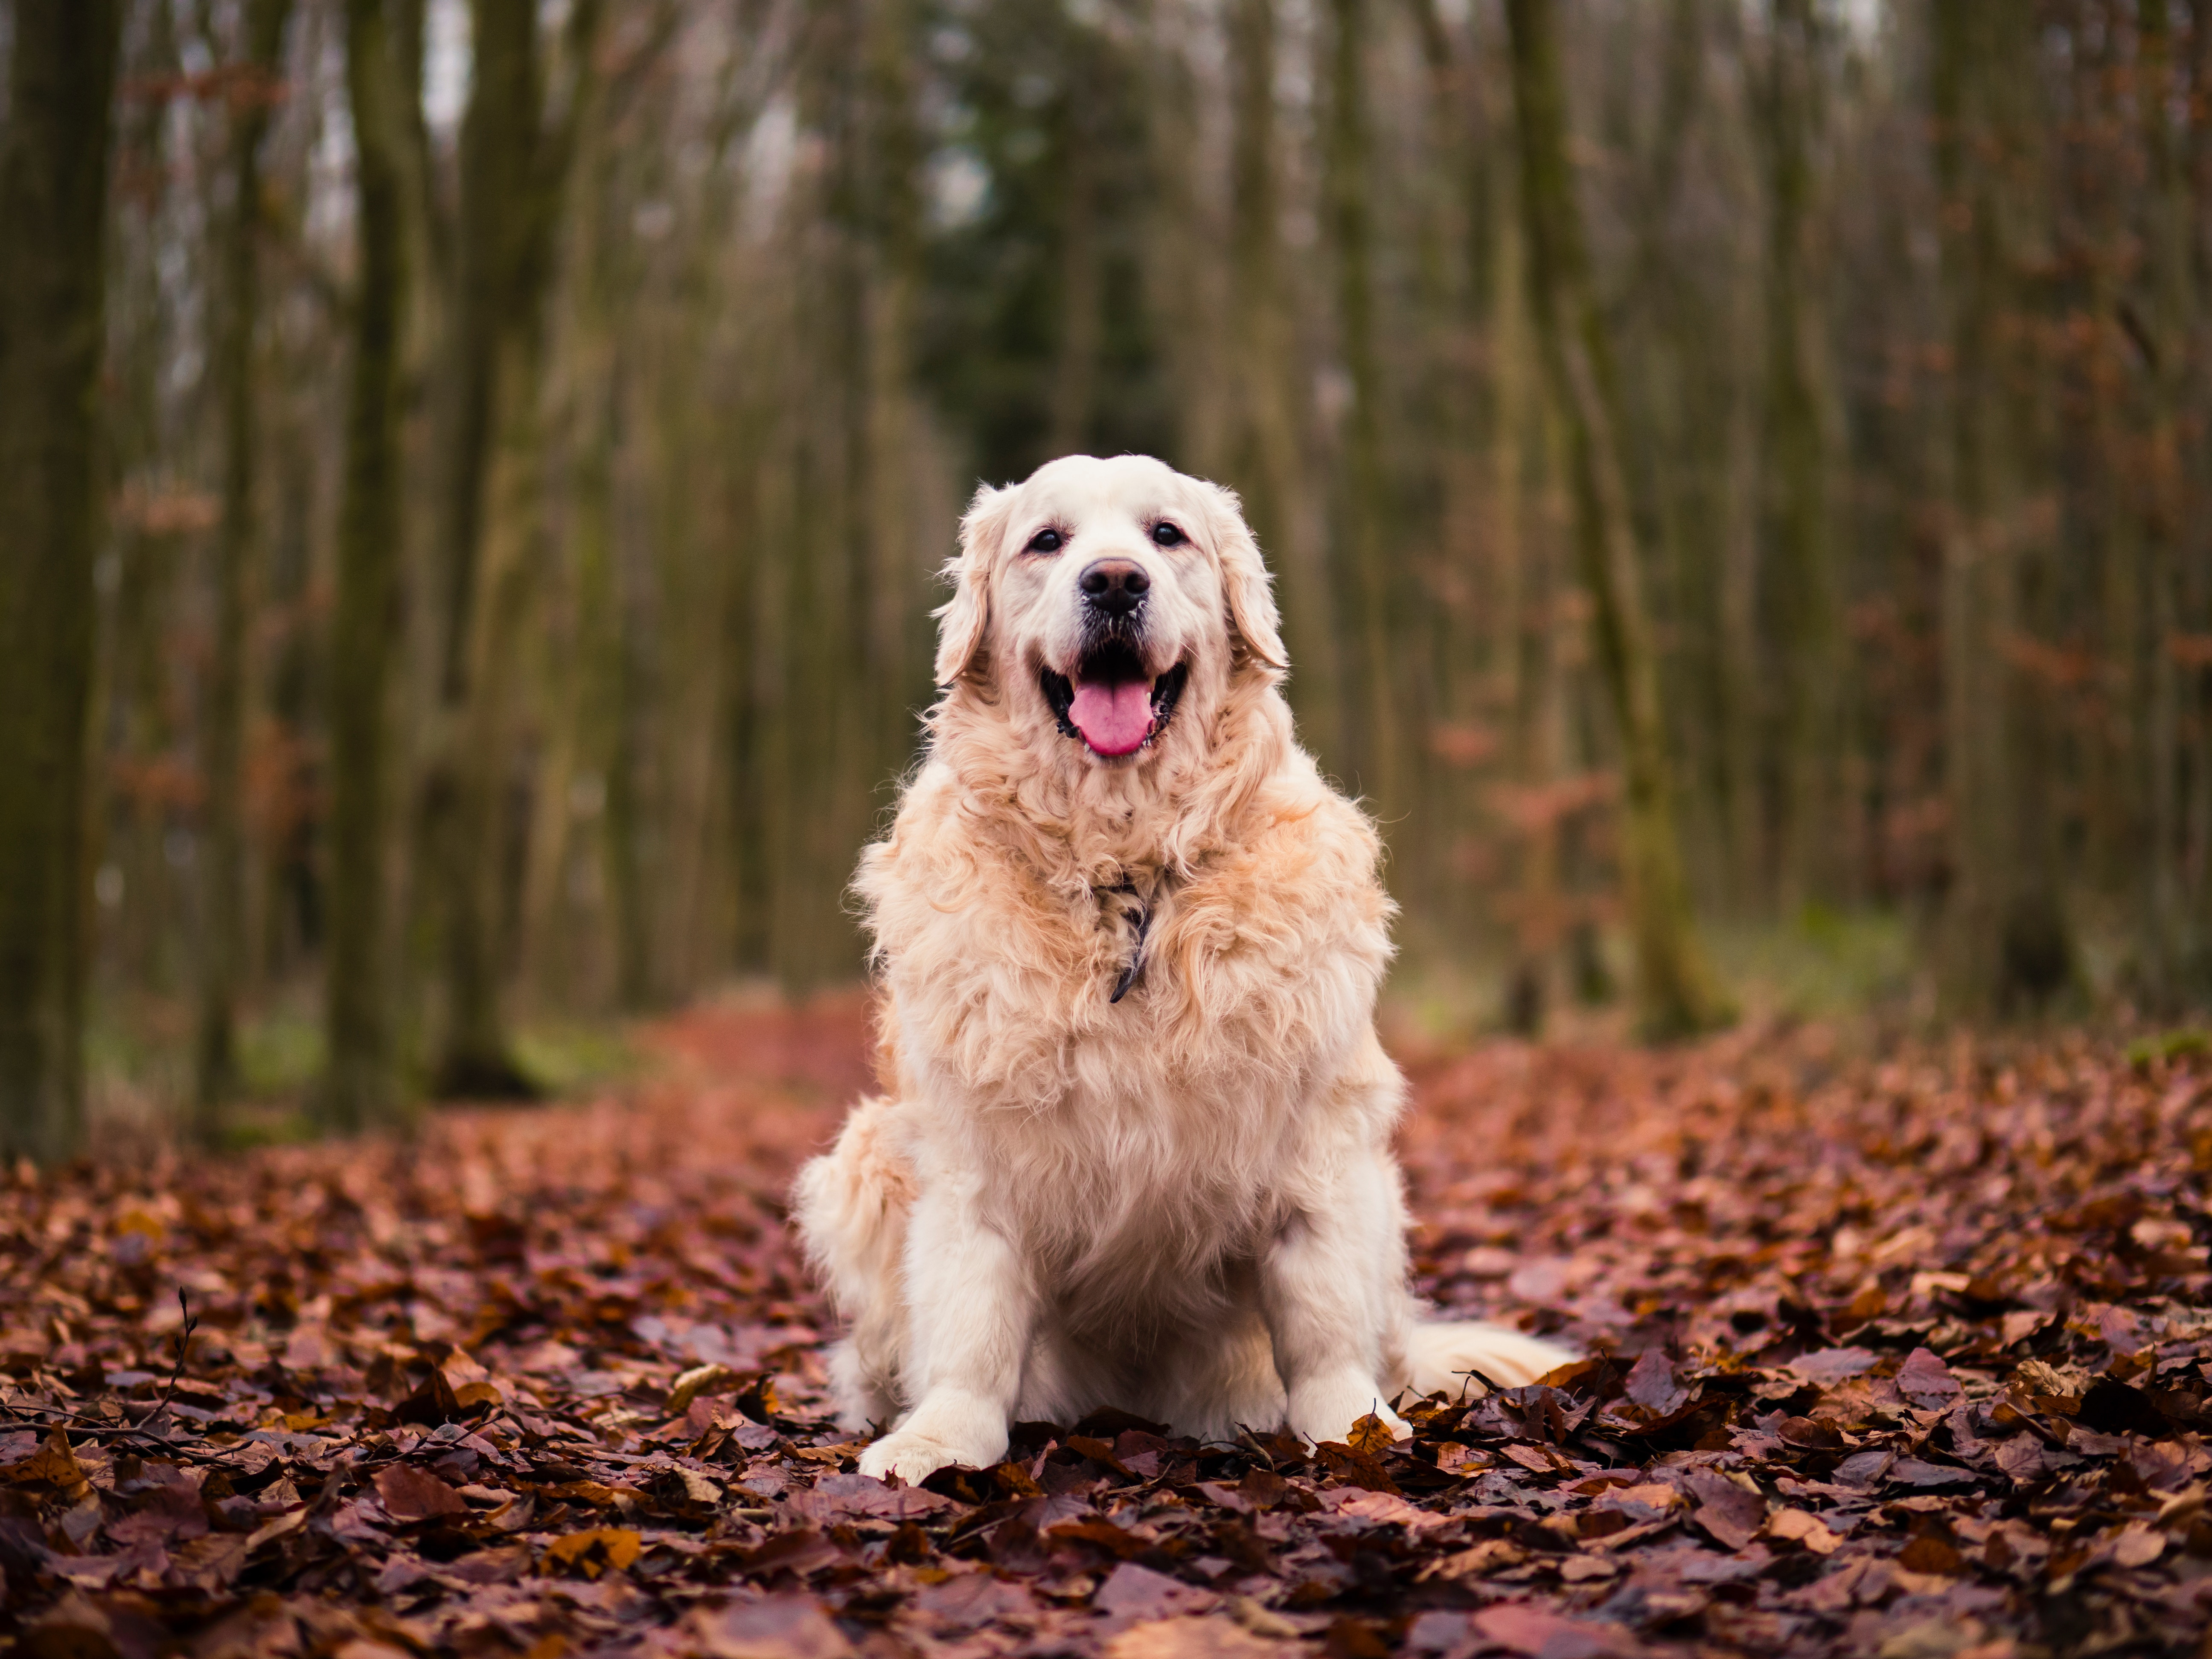 155737 download wallpaper Animals, Autumn, Dog, Foliage, Is Sitting, Sits screensavers and pictures for free